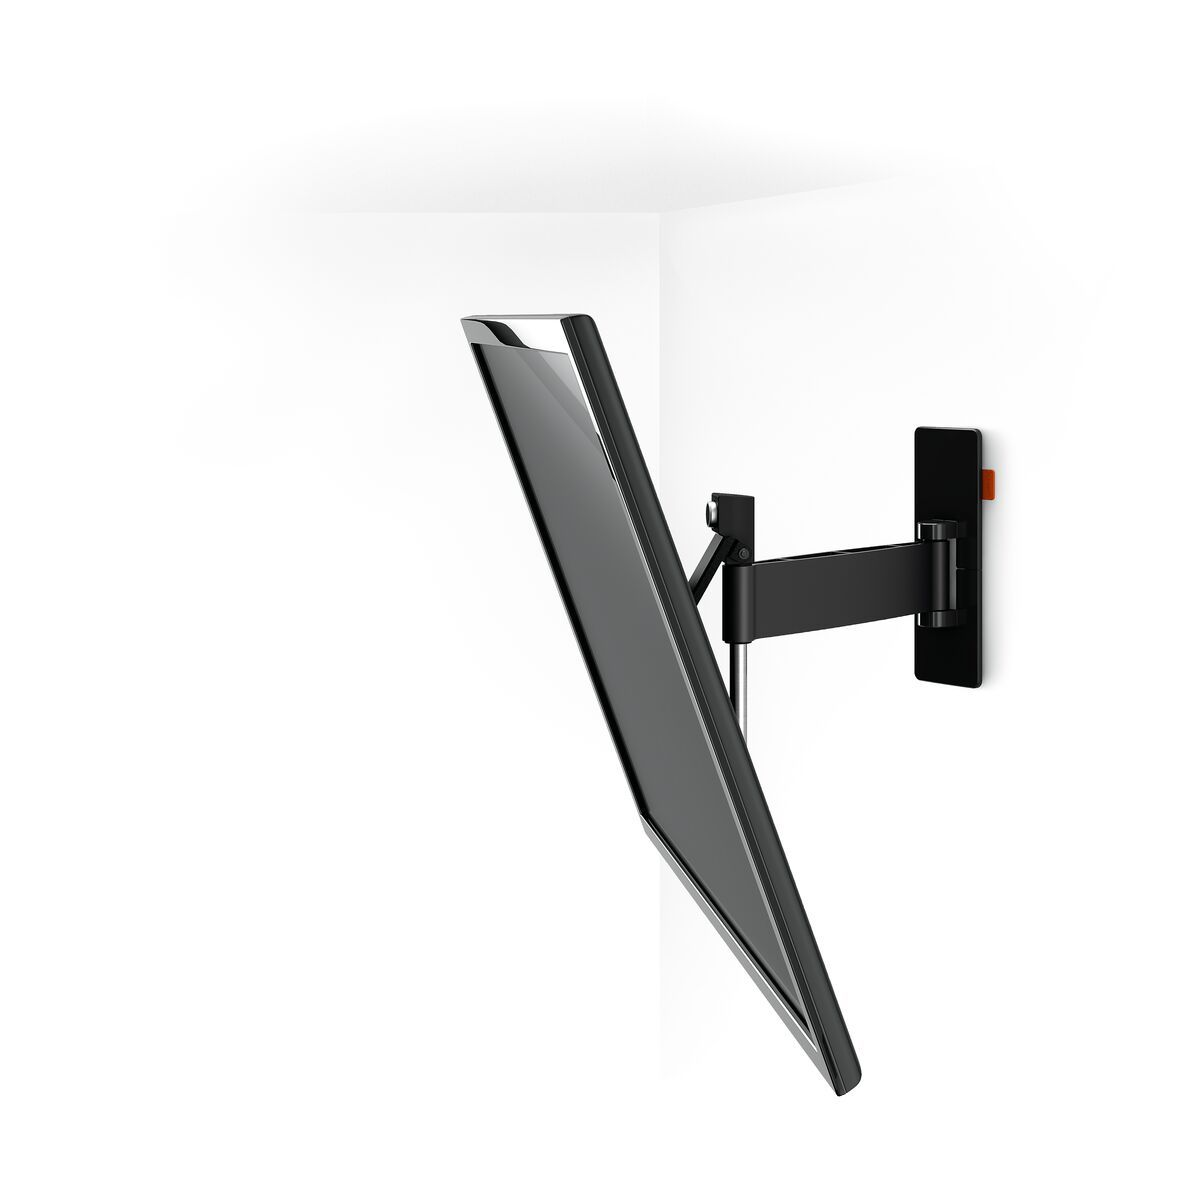 Vogel's W52080 Full-Motion TV Wall Mount (black) - Suitable for 40 up to 65 inch TVs - Motion (up to 120°) - Tilt up to 20° - White wall